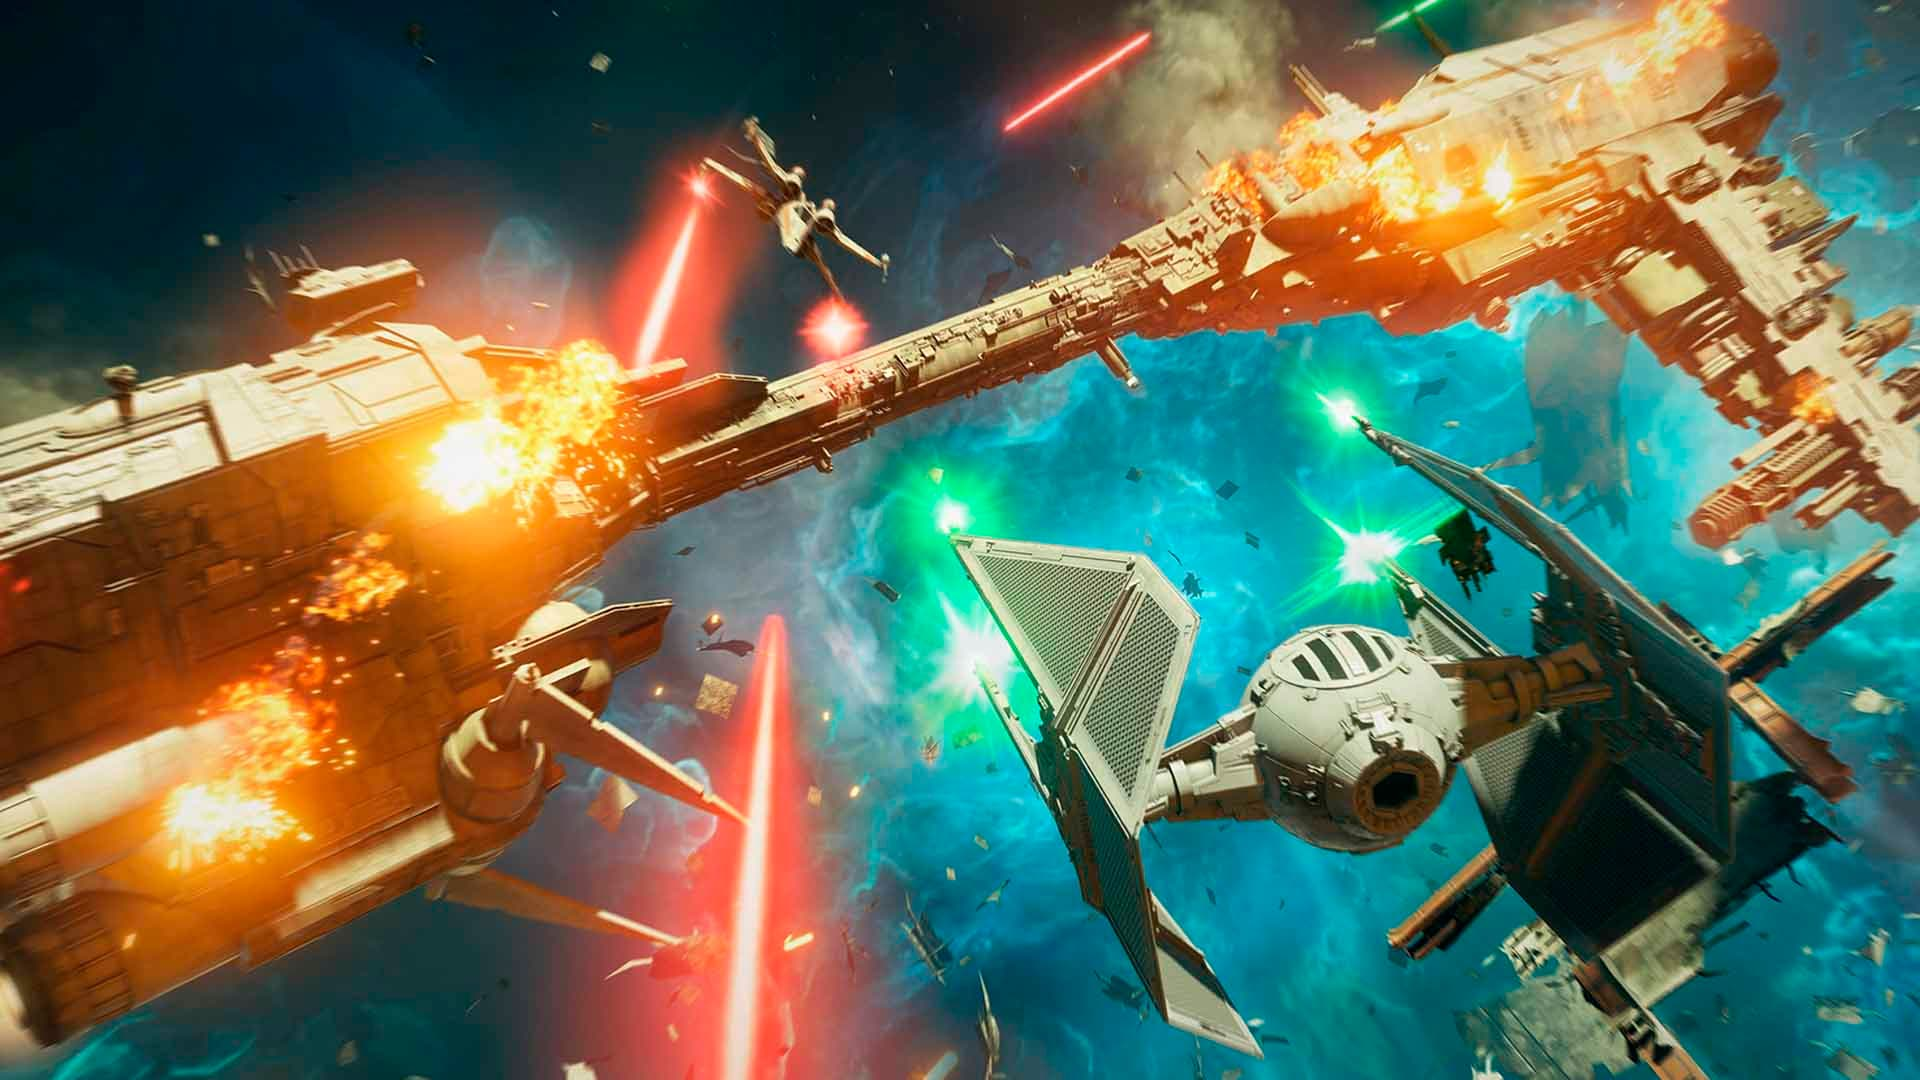 Confirmada la fecha de llegada de Star Wars Squadrons a EA Play y Xbox Game Pass Ultimate 2